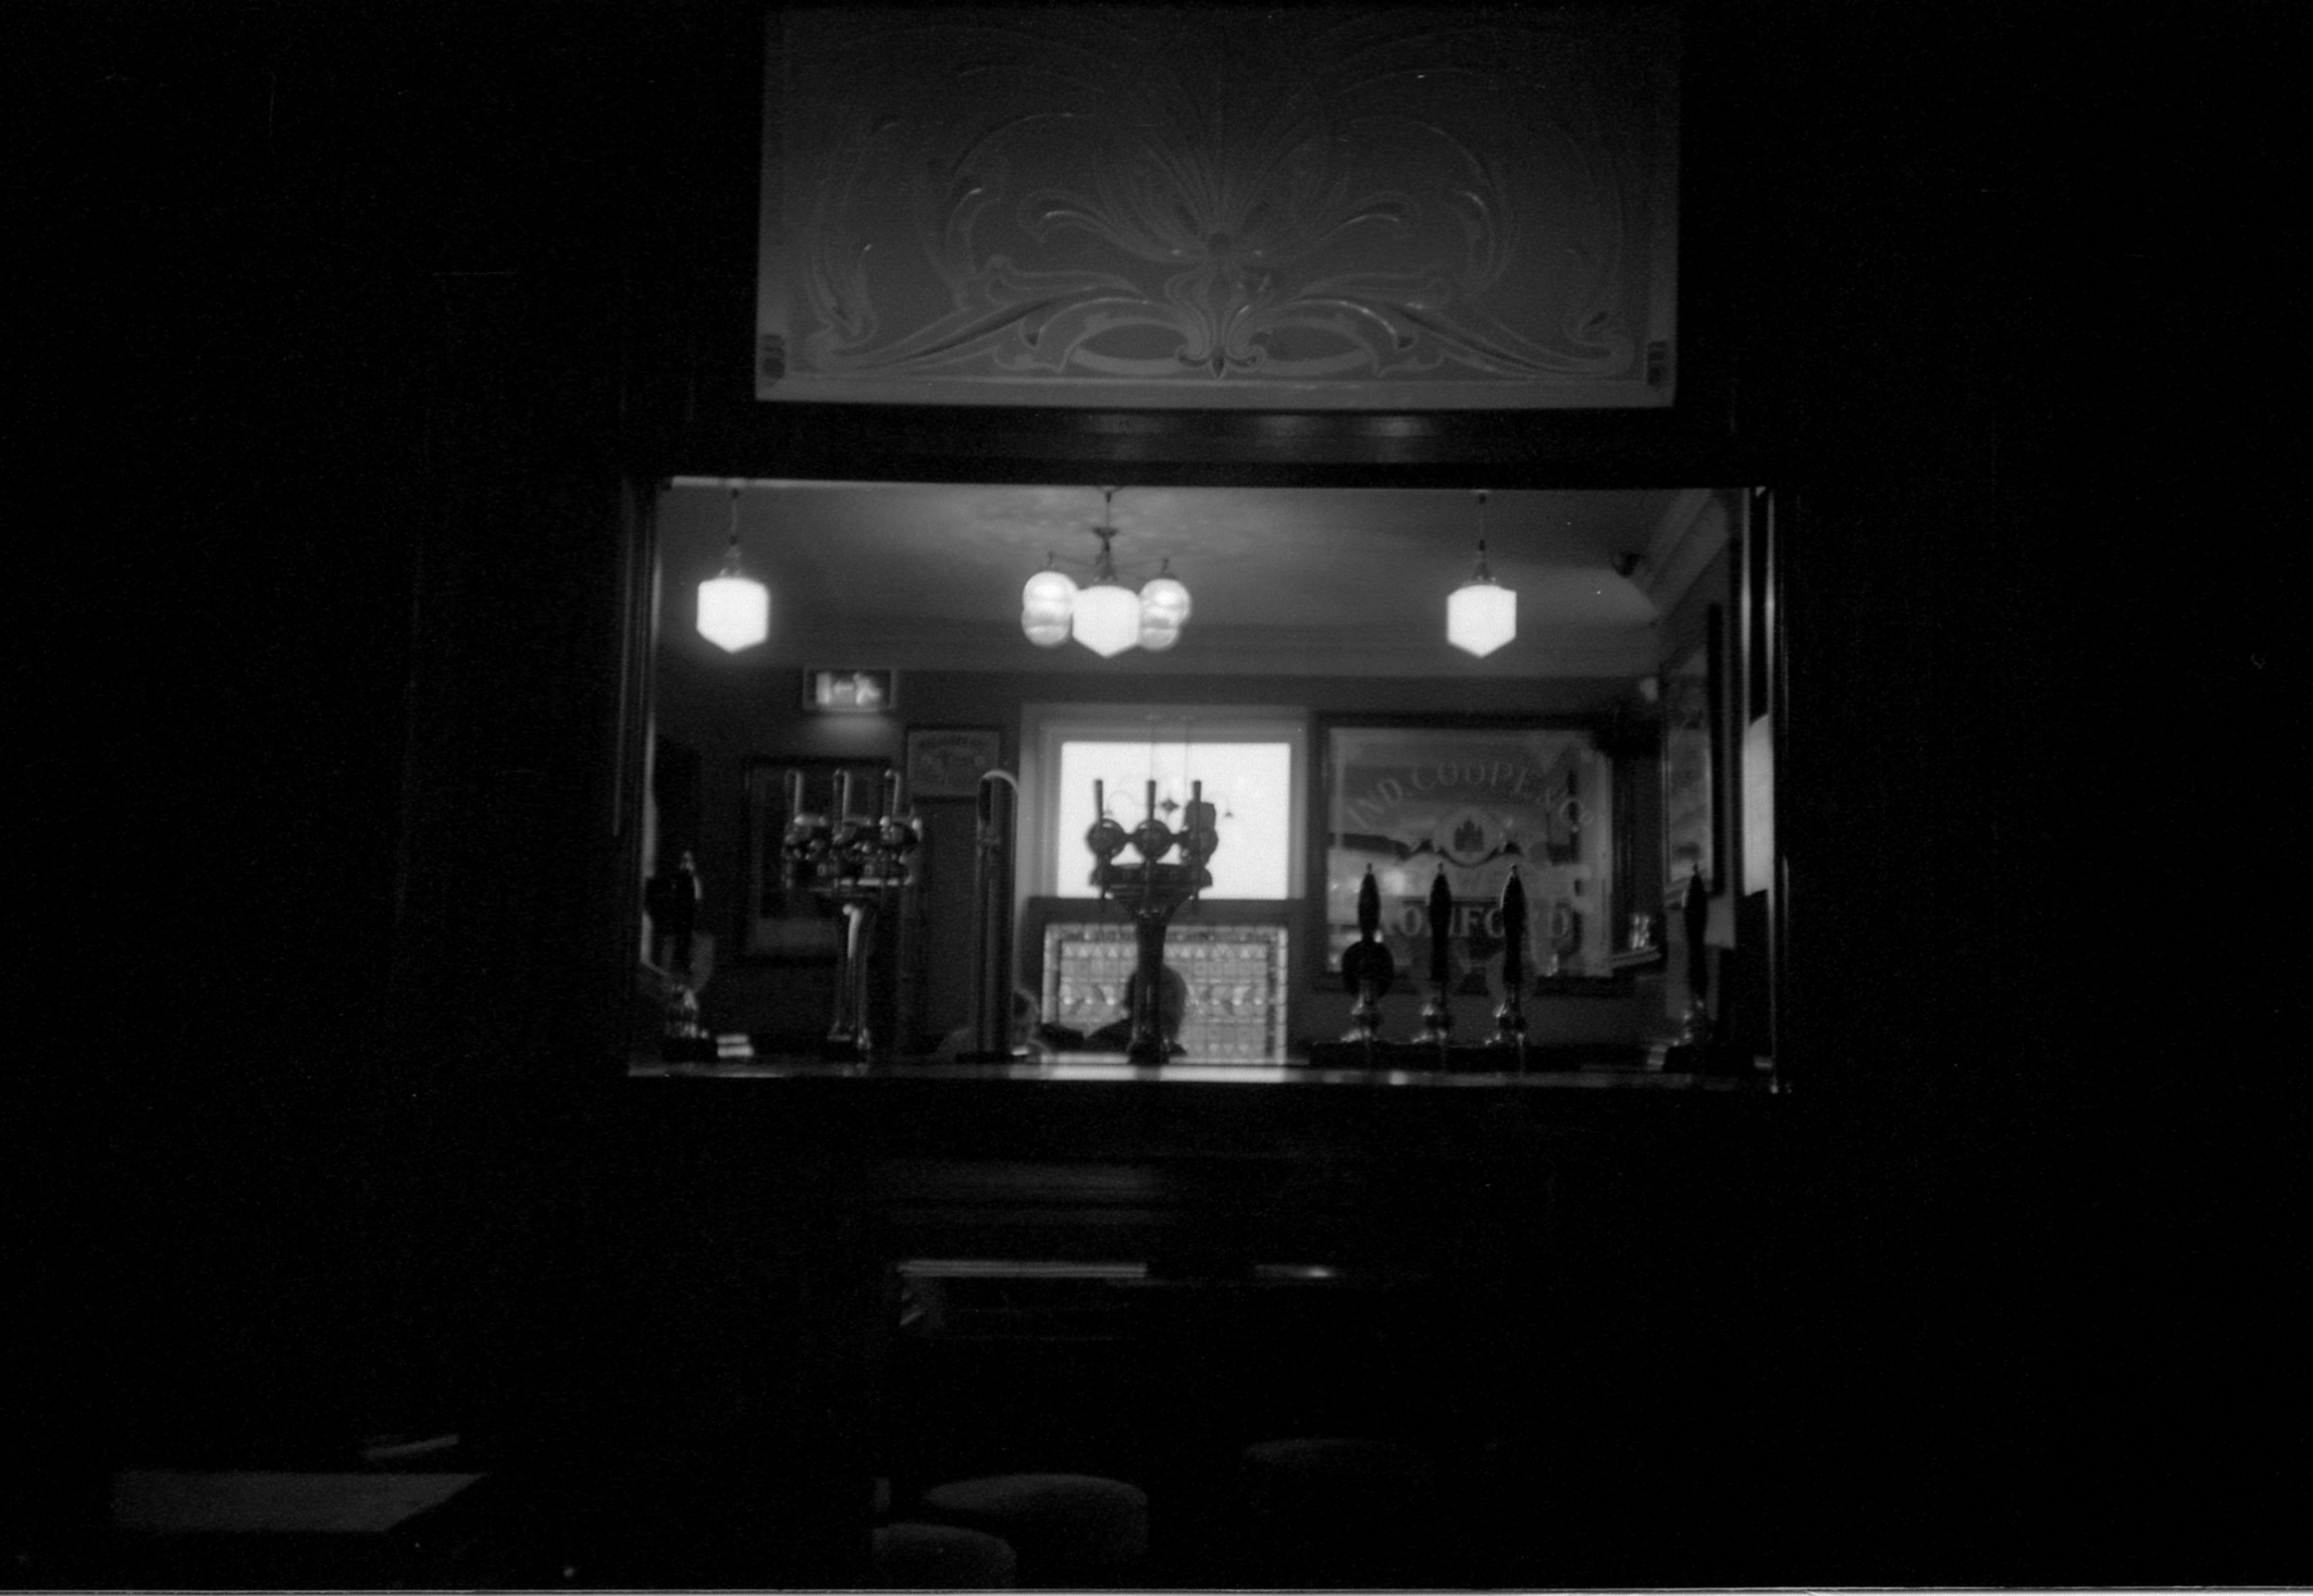 29/366 - We went for a nice drink in our local pub. I'm really pleased this photo worked, it felt risky ha.